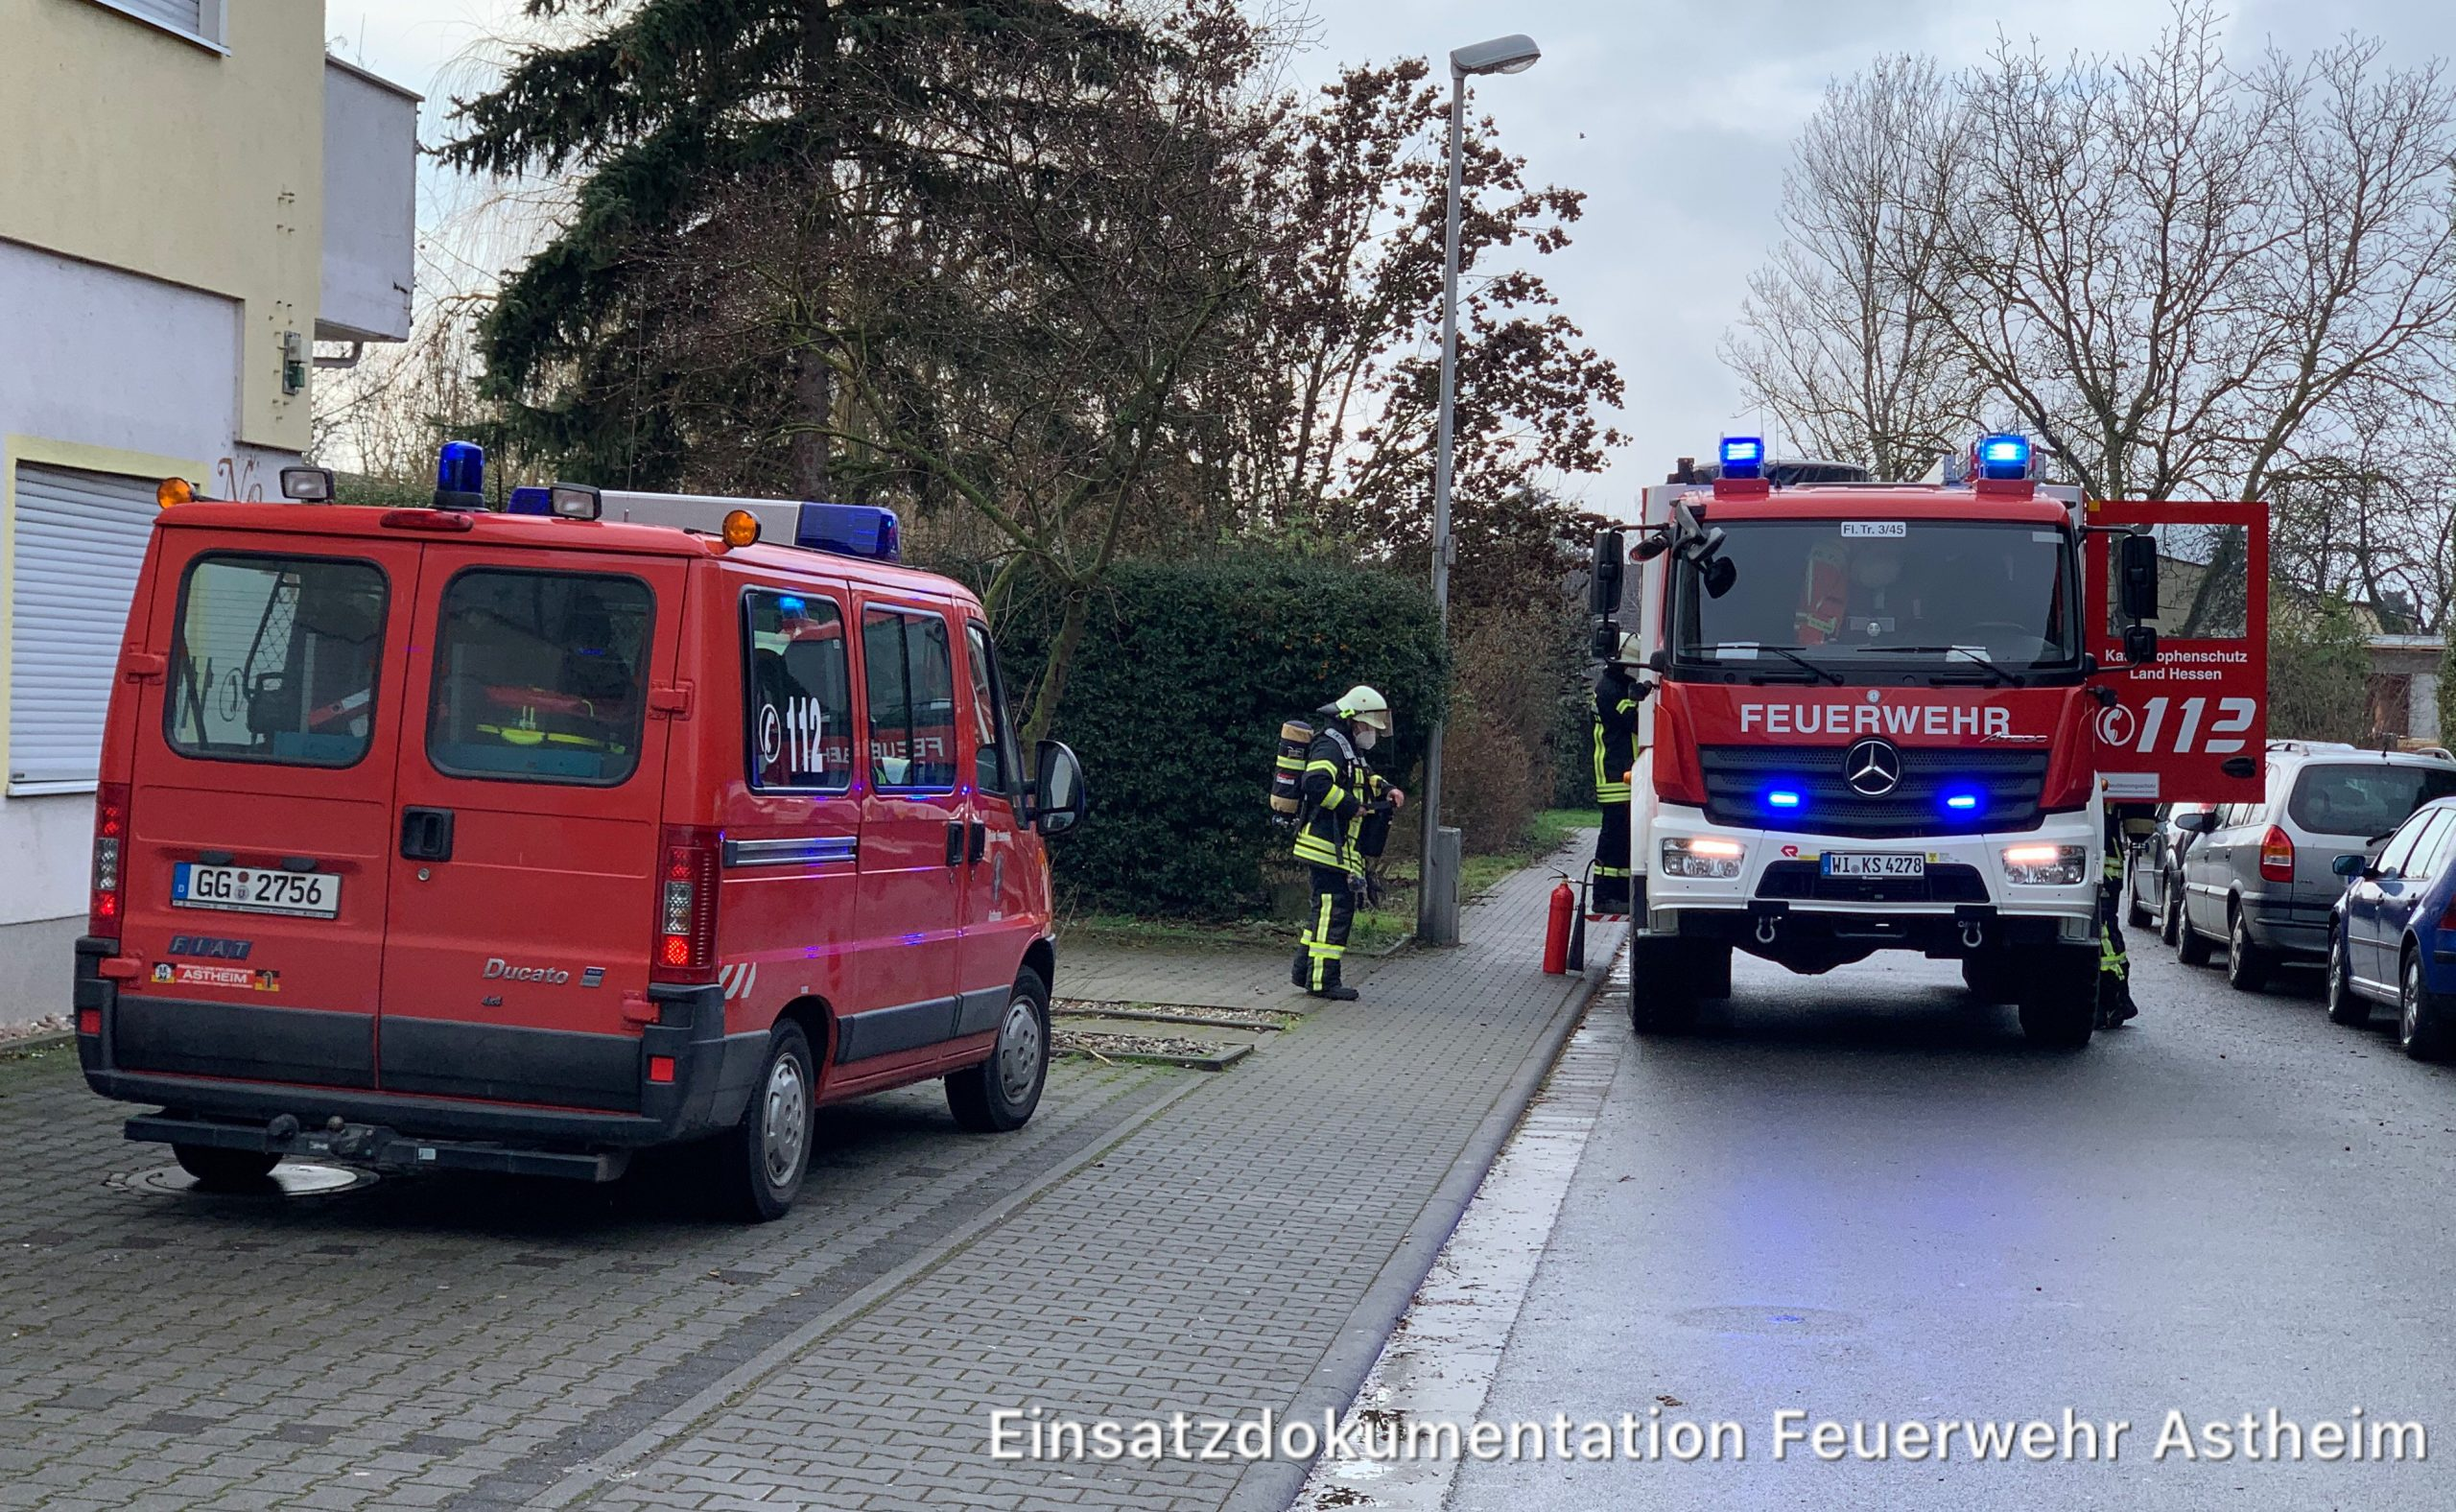 04/2021 Brandmelder in Alarm